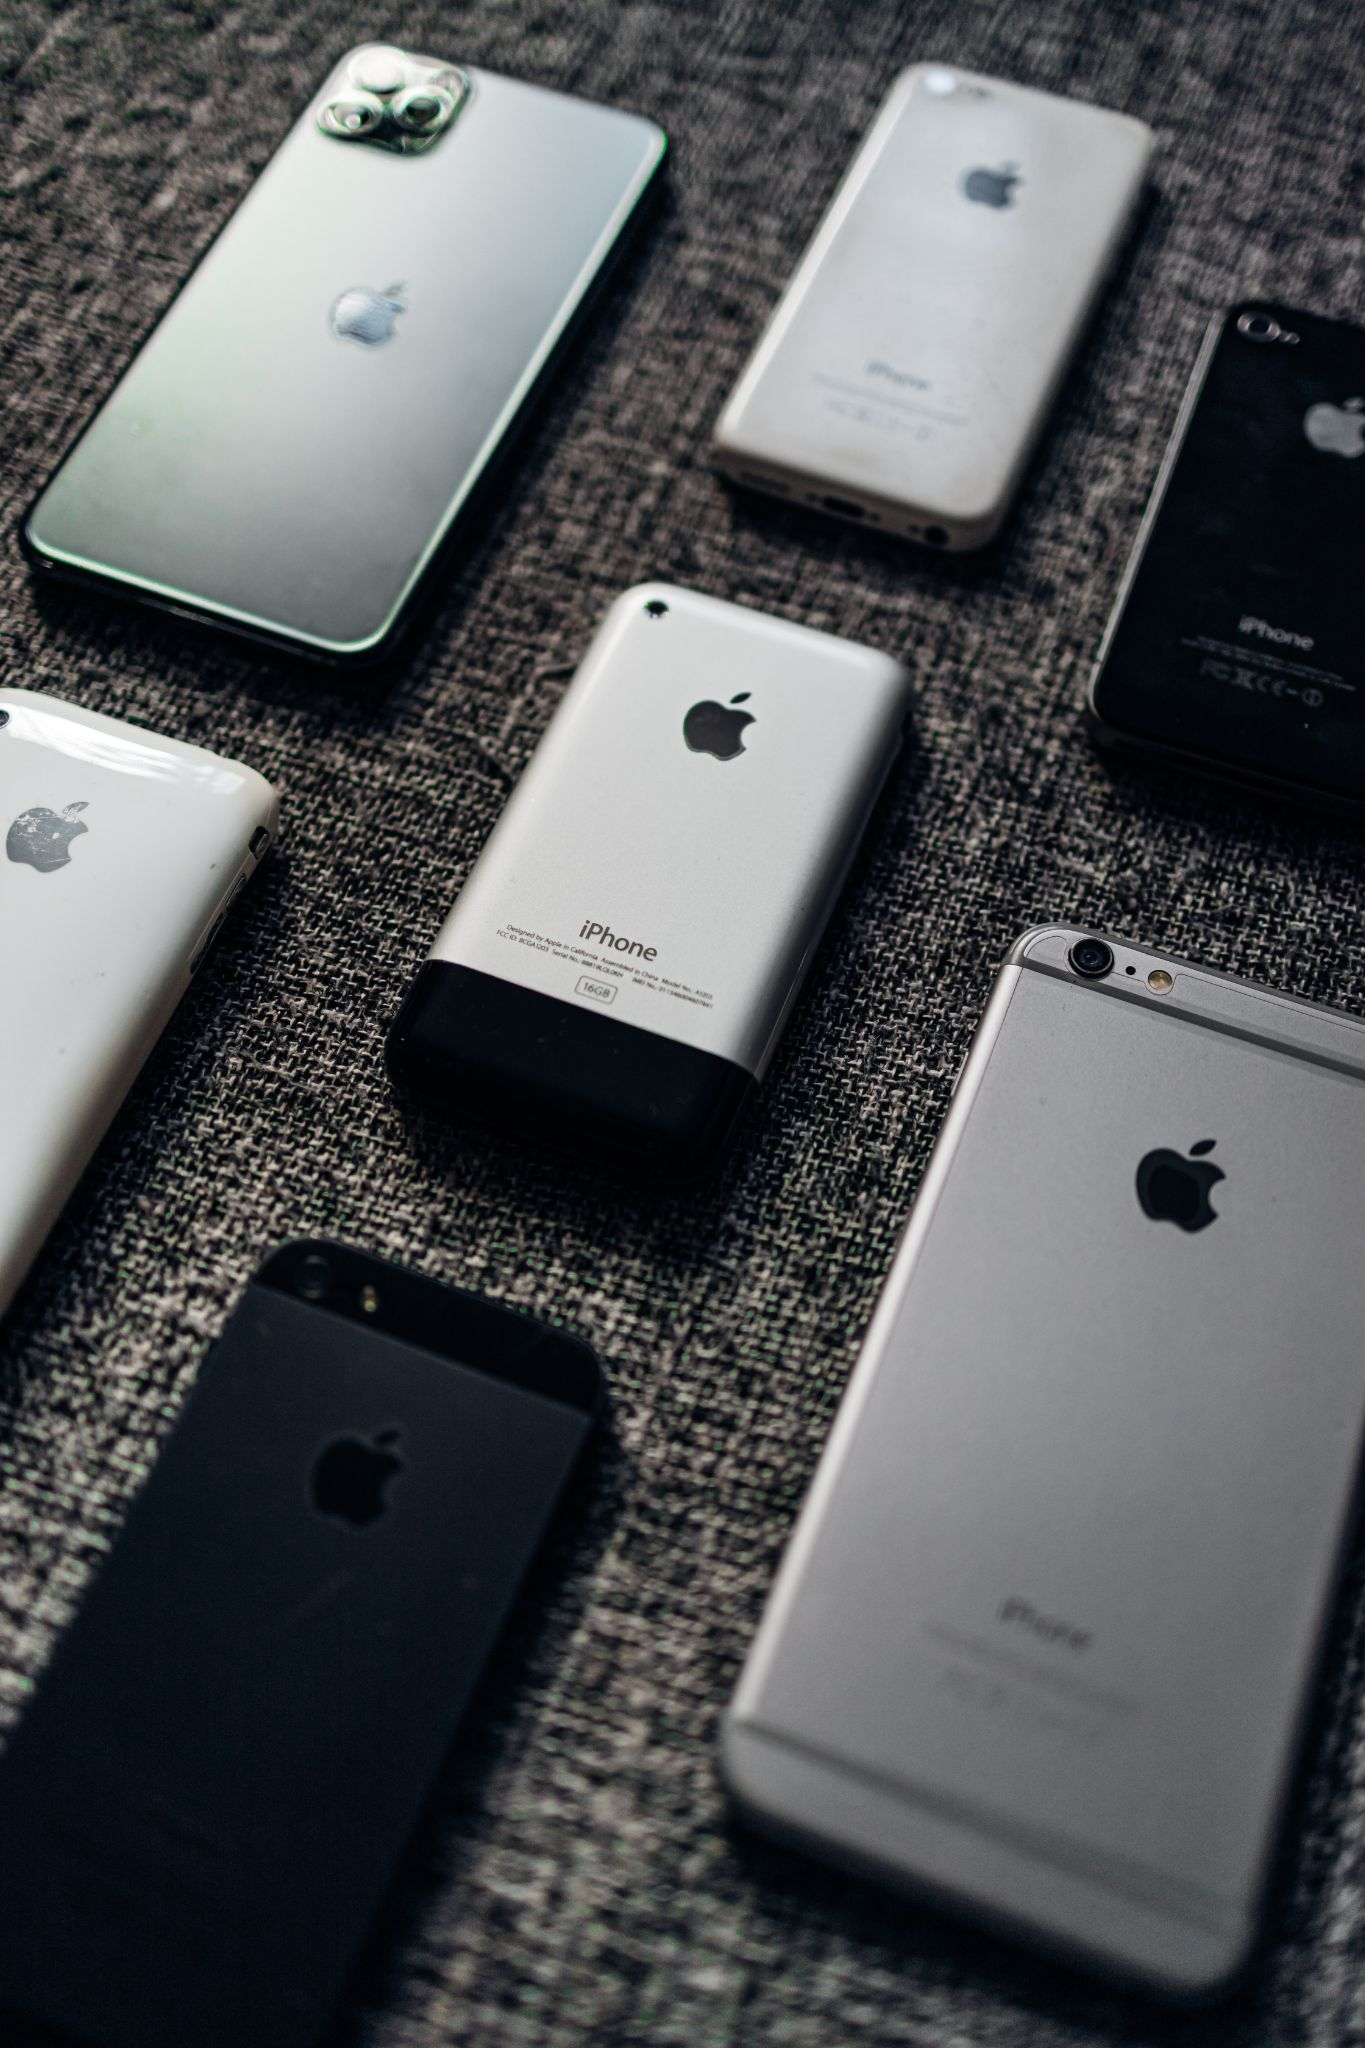 Trading in your old Apple devices gives your device new life and has a positive impact on the environment!